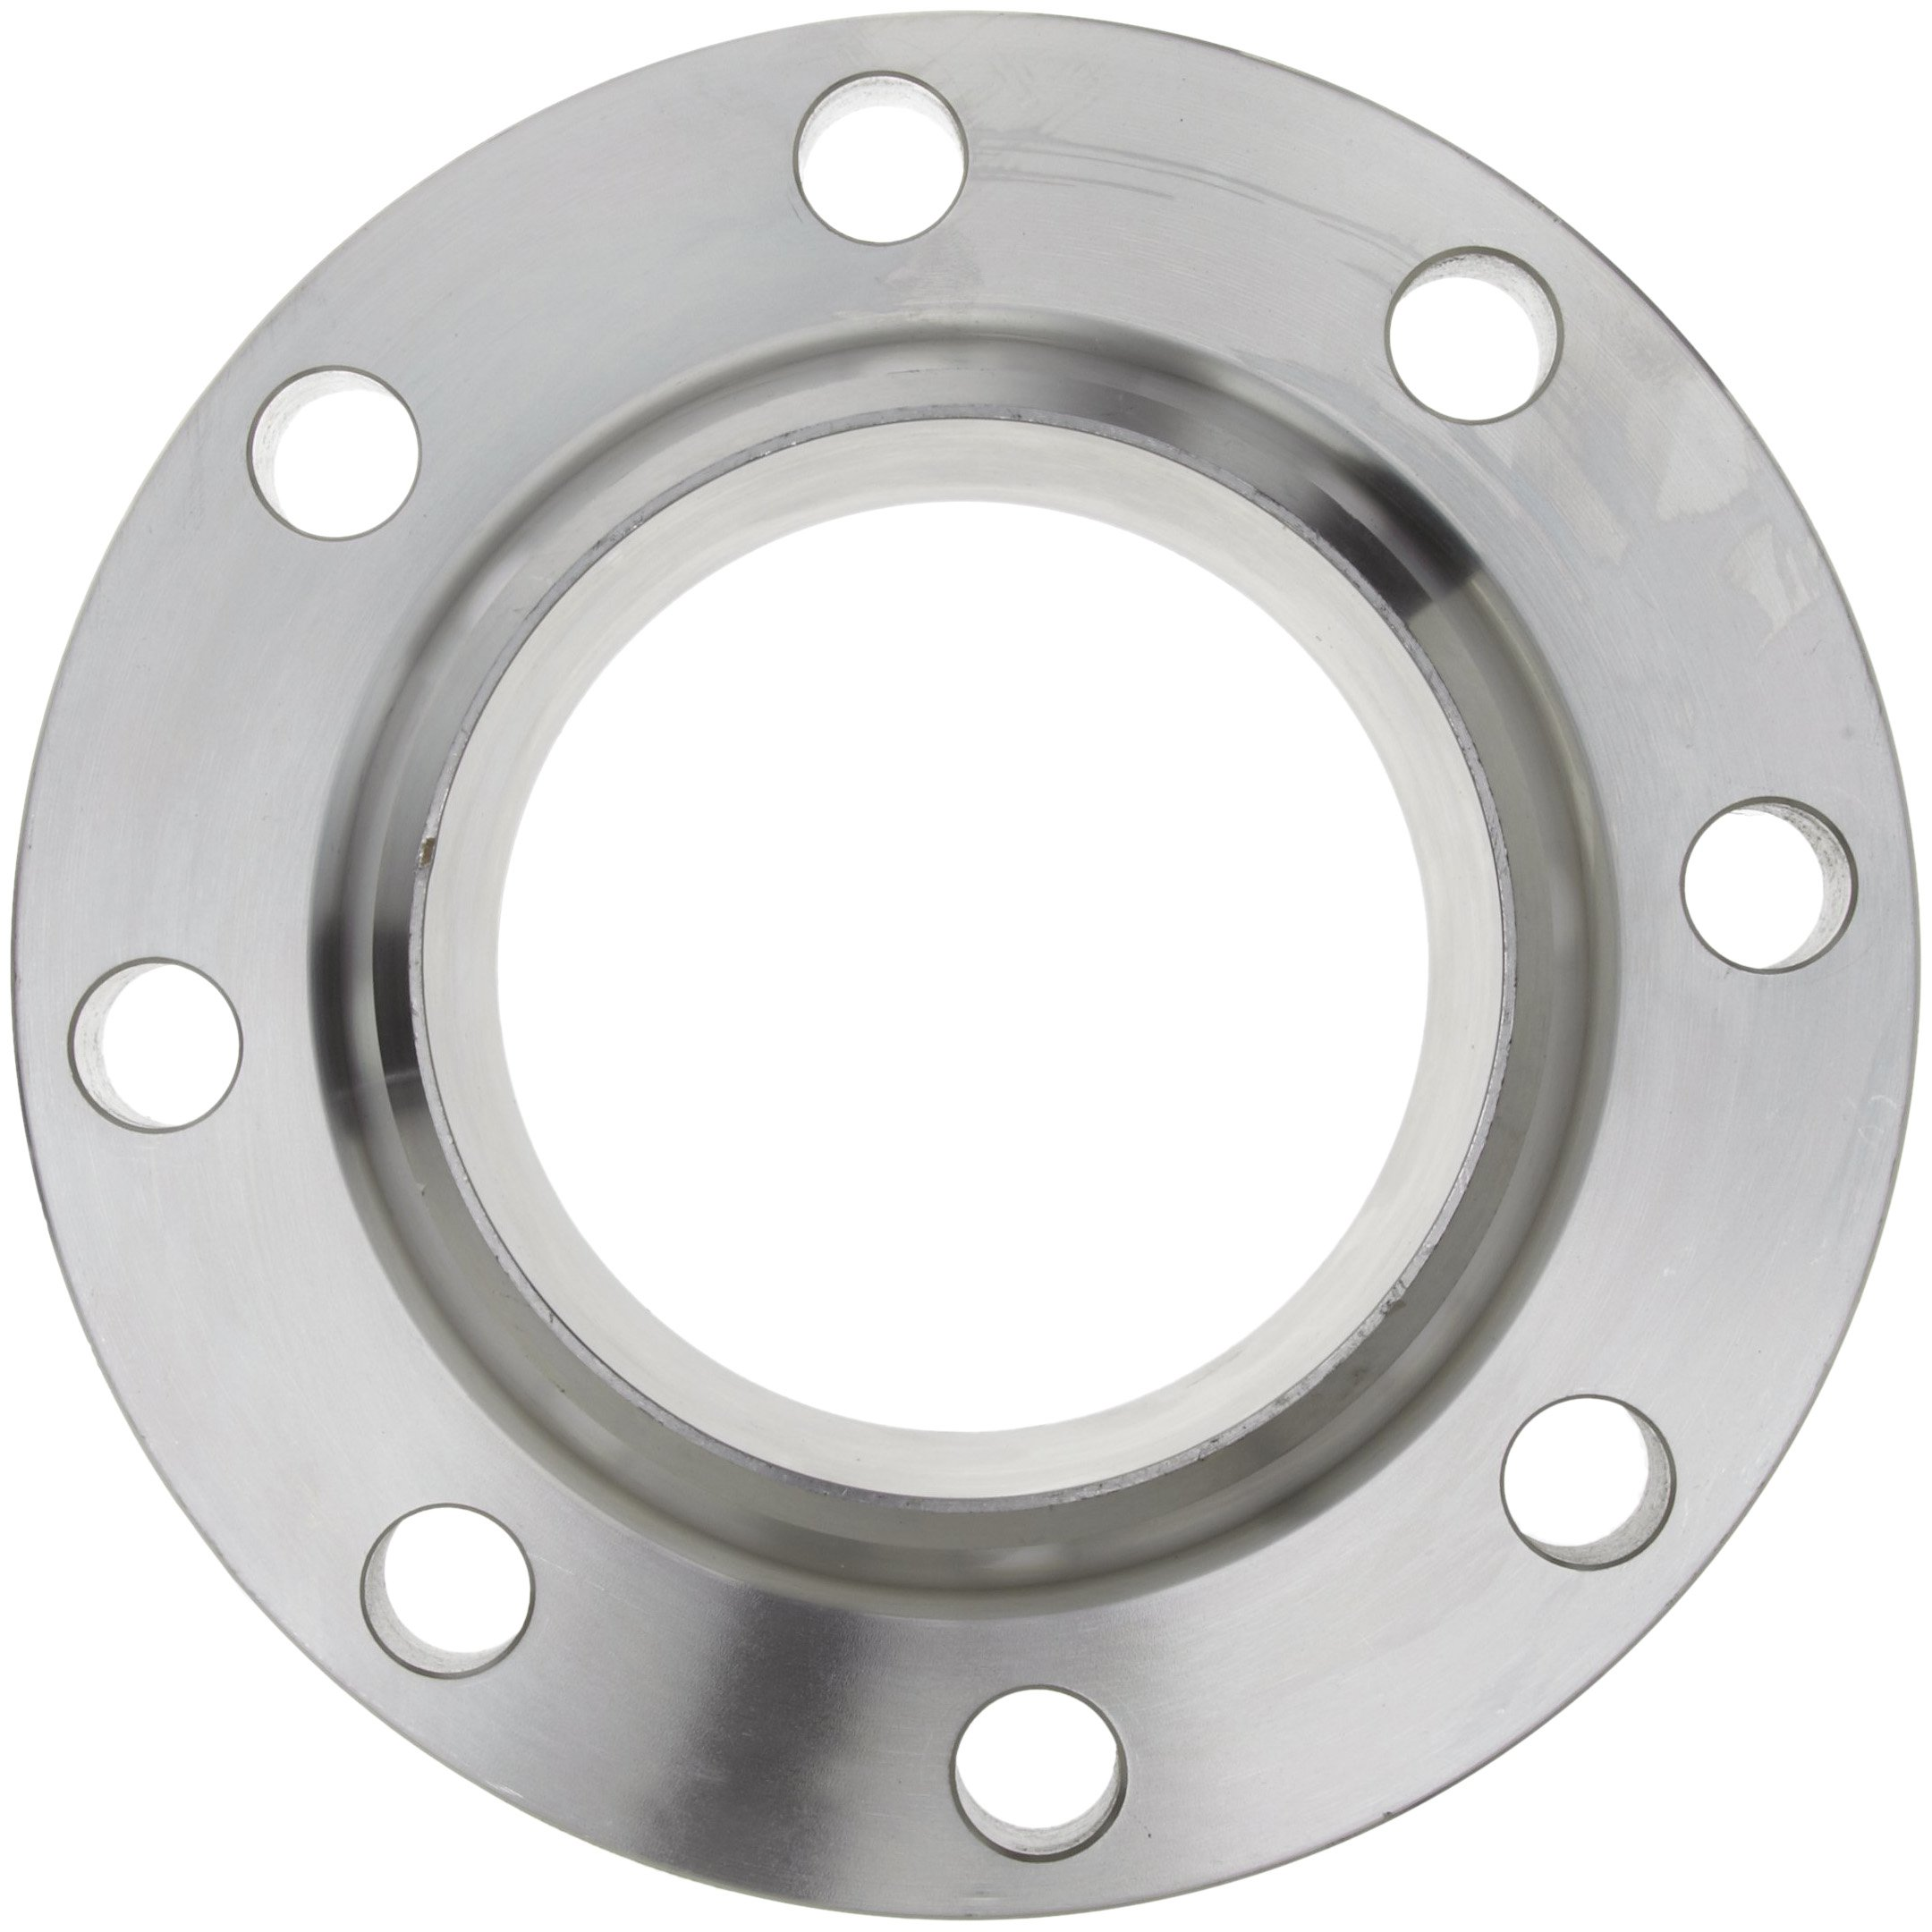 Stainless Steel 304/304L Weld Neck Pipe Fitting, Flange, Schedule 40, Class 150, 6'' Pipe Size by Merit Brass (Image #2)